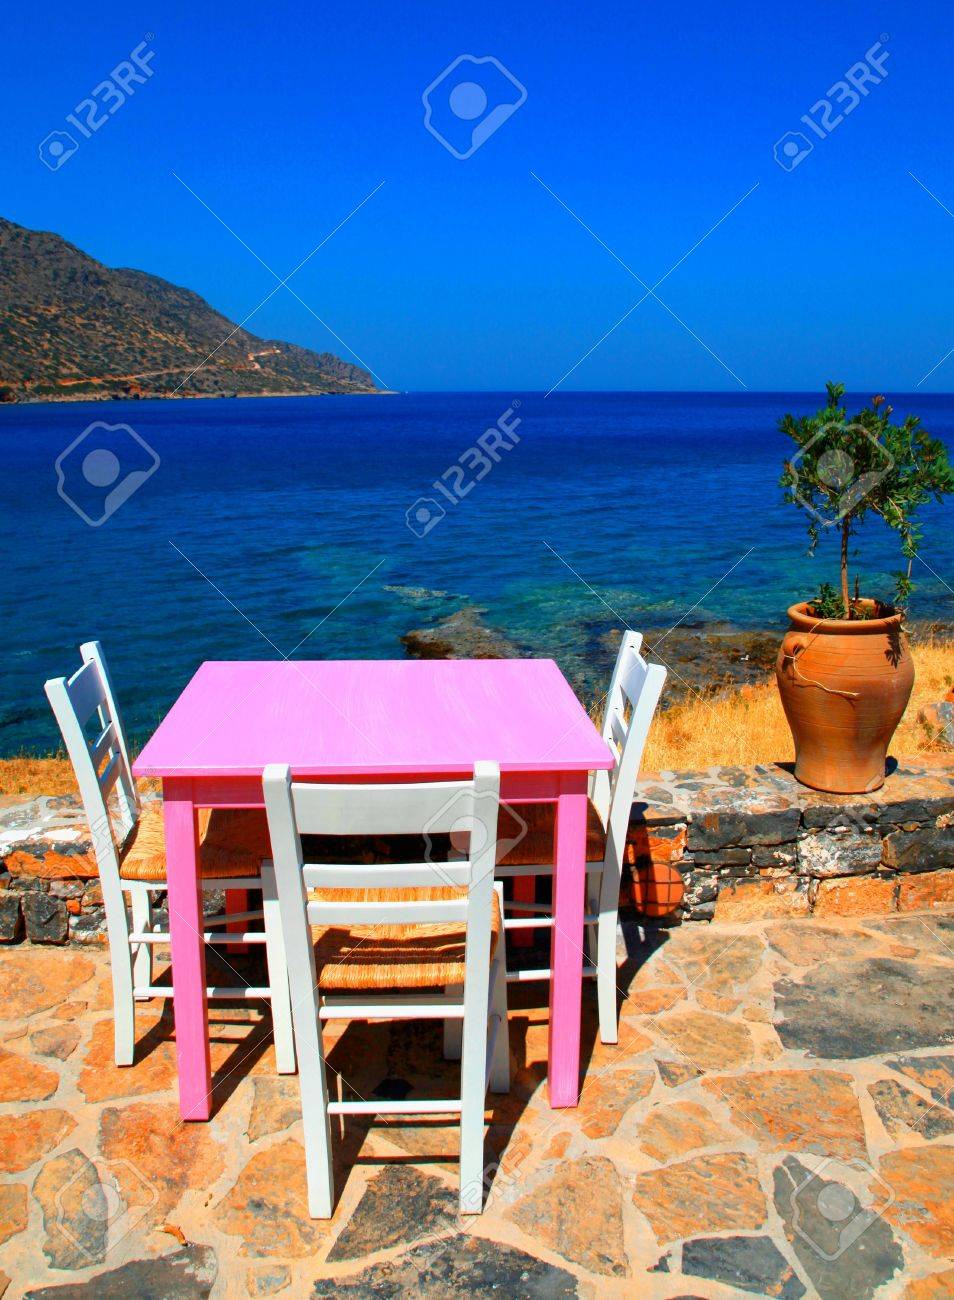 Outdoor Restaurant Traditional Greek Tavern With Pink Table Stock Photo Picture And Royalty Free Image Image 17691730